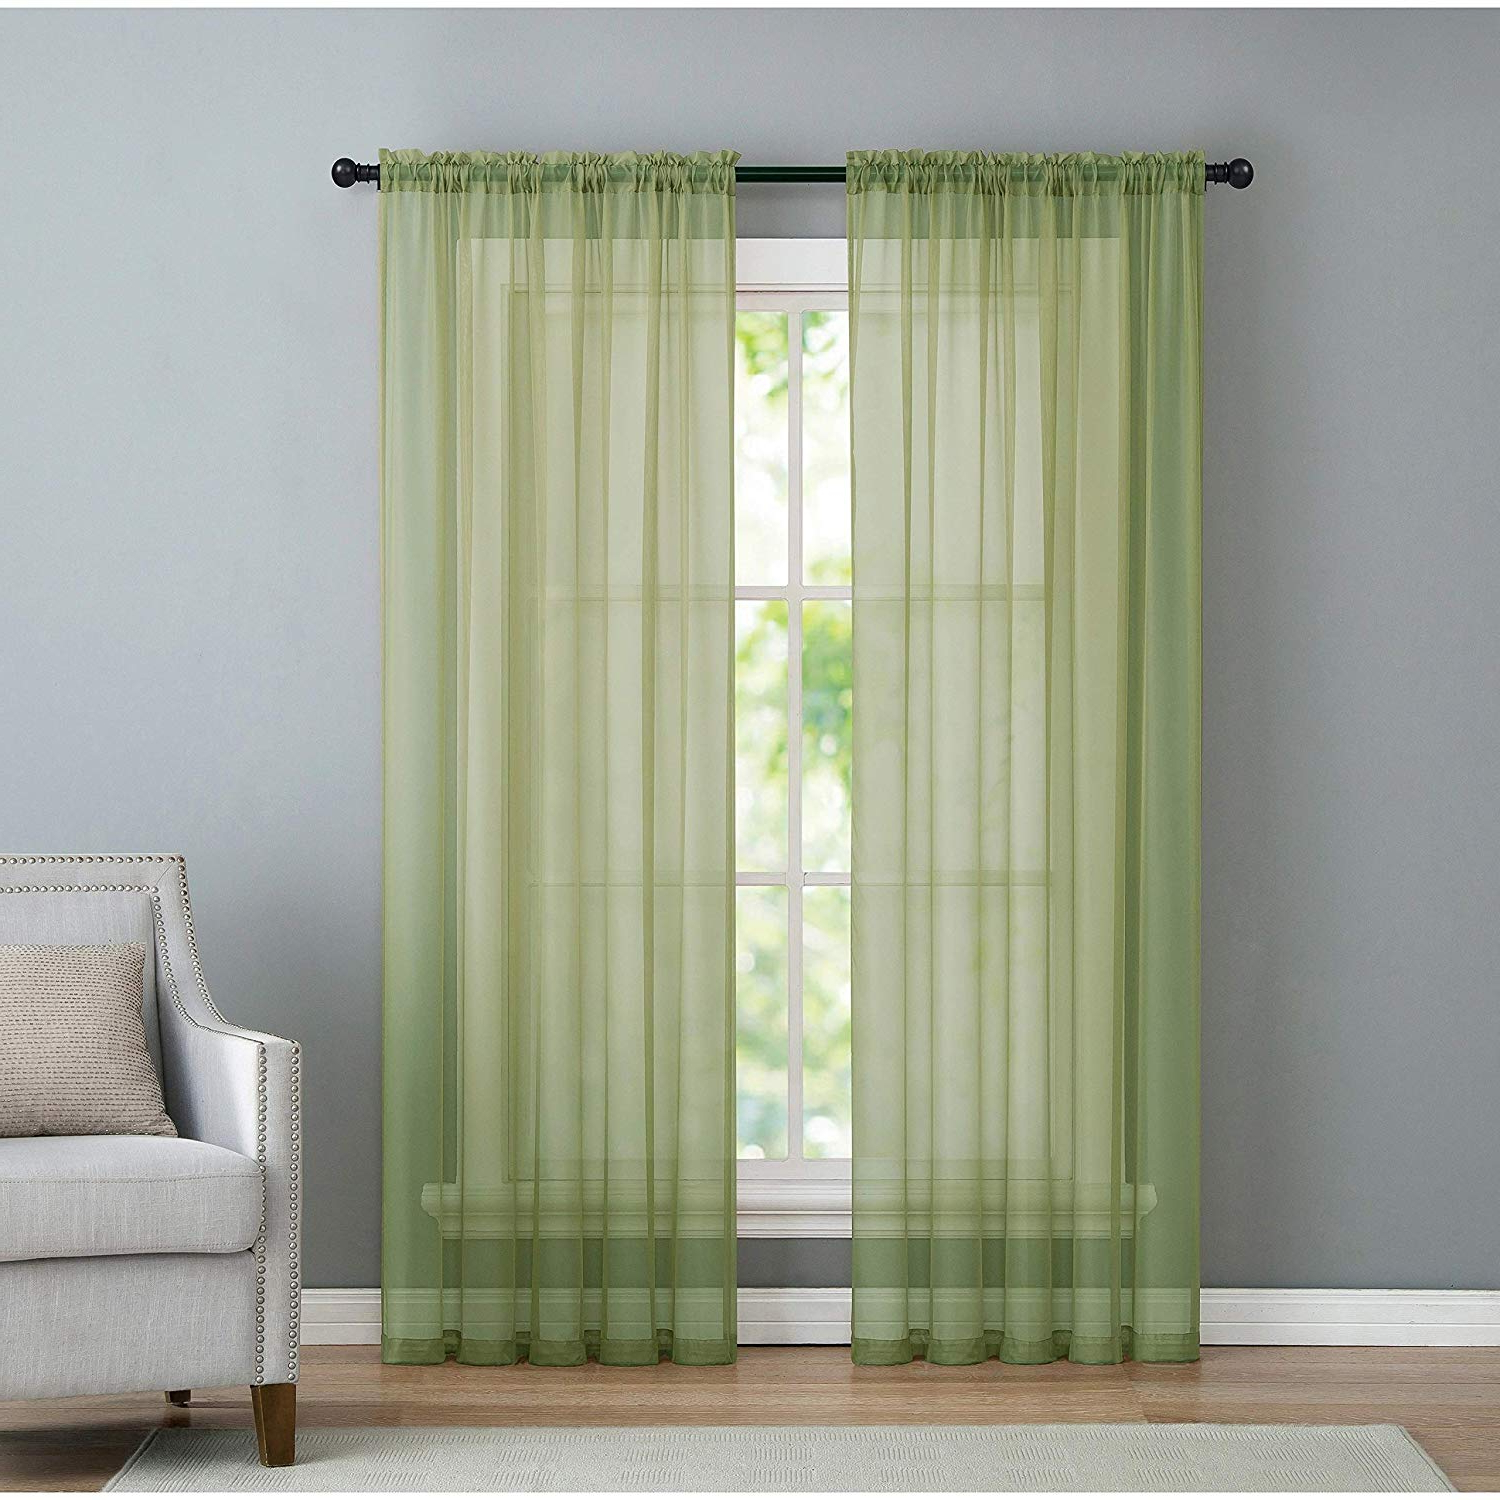 Vcny Home Infinity Rod Pocket Sheer Window Curtains Panel Pair 104x108 Sage With Well Known Infinity Sheer Rod Pocket Curtain Panels (View 20 of 20)